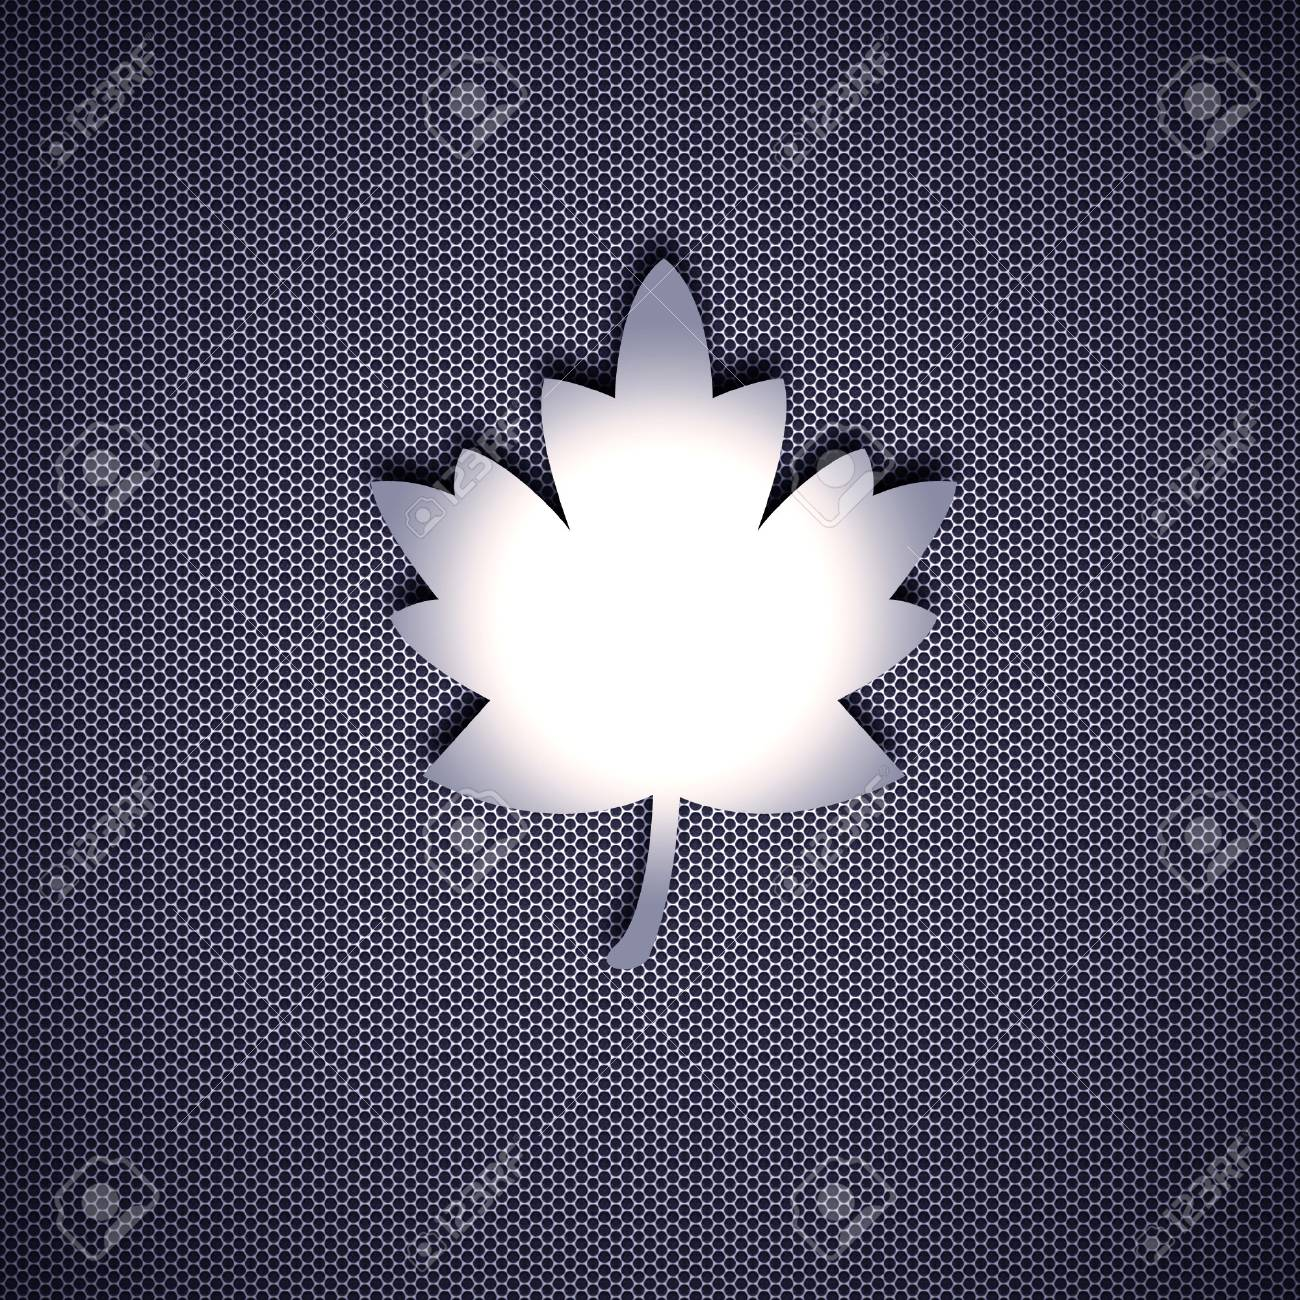 Leaf isolated on metal background. Steel background. Stock Photo - 8013559